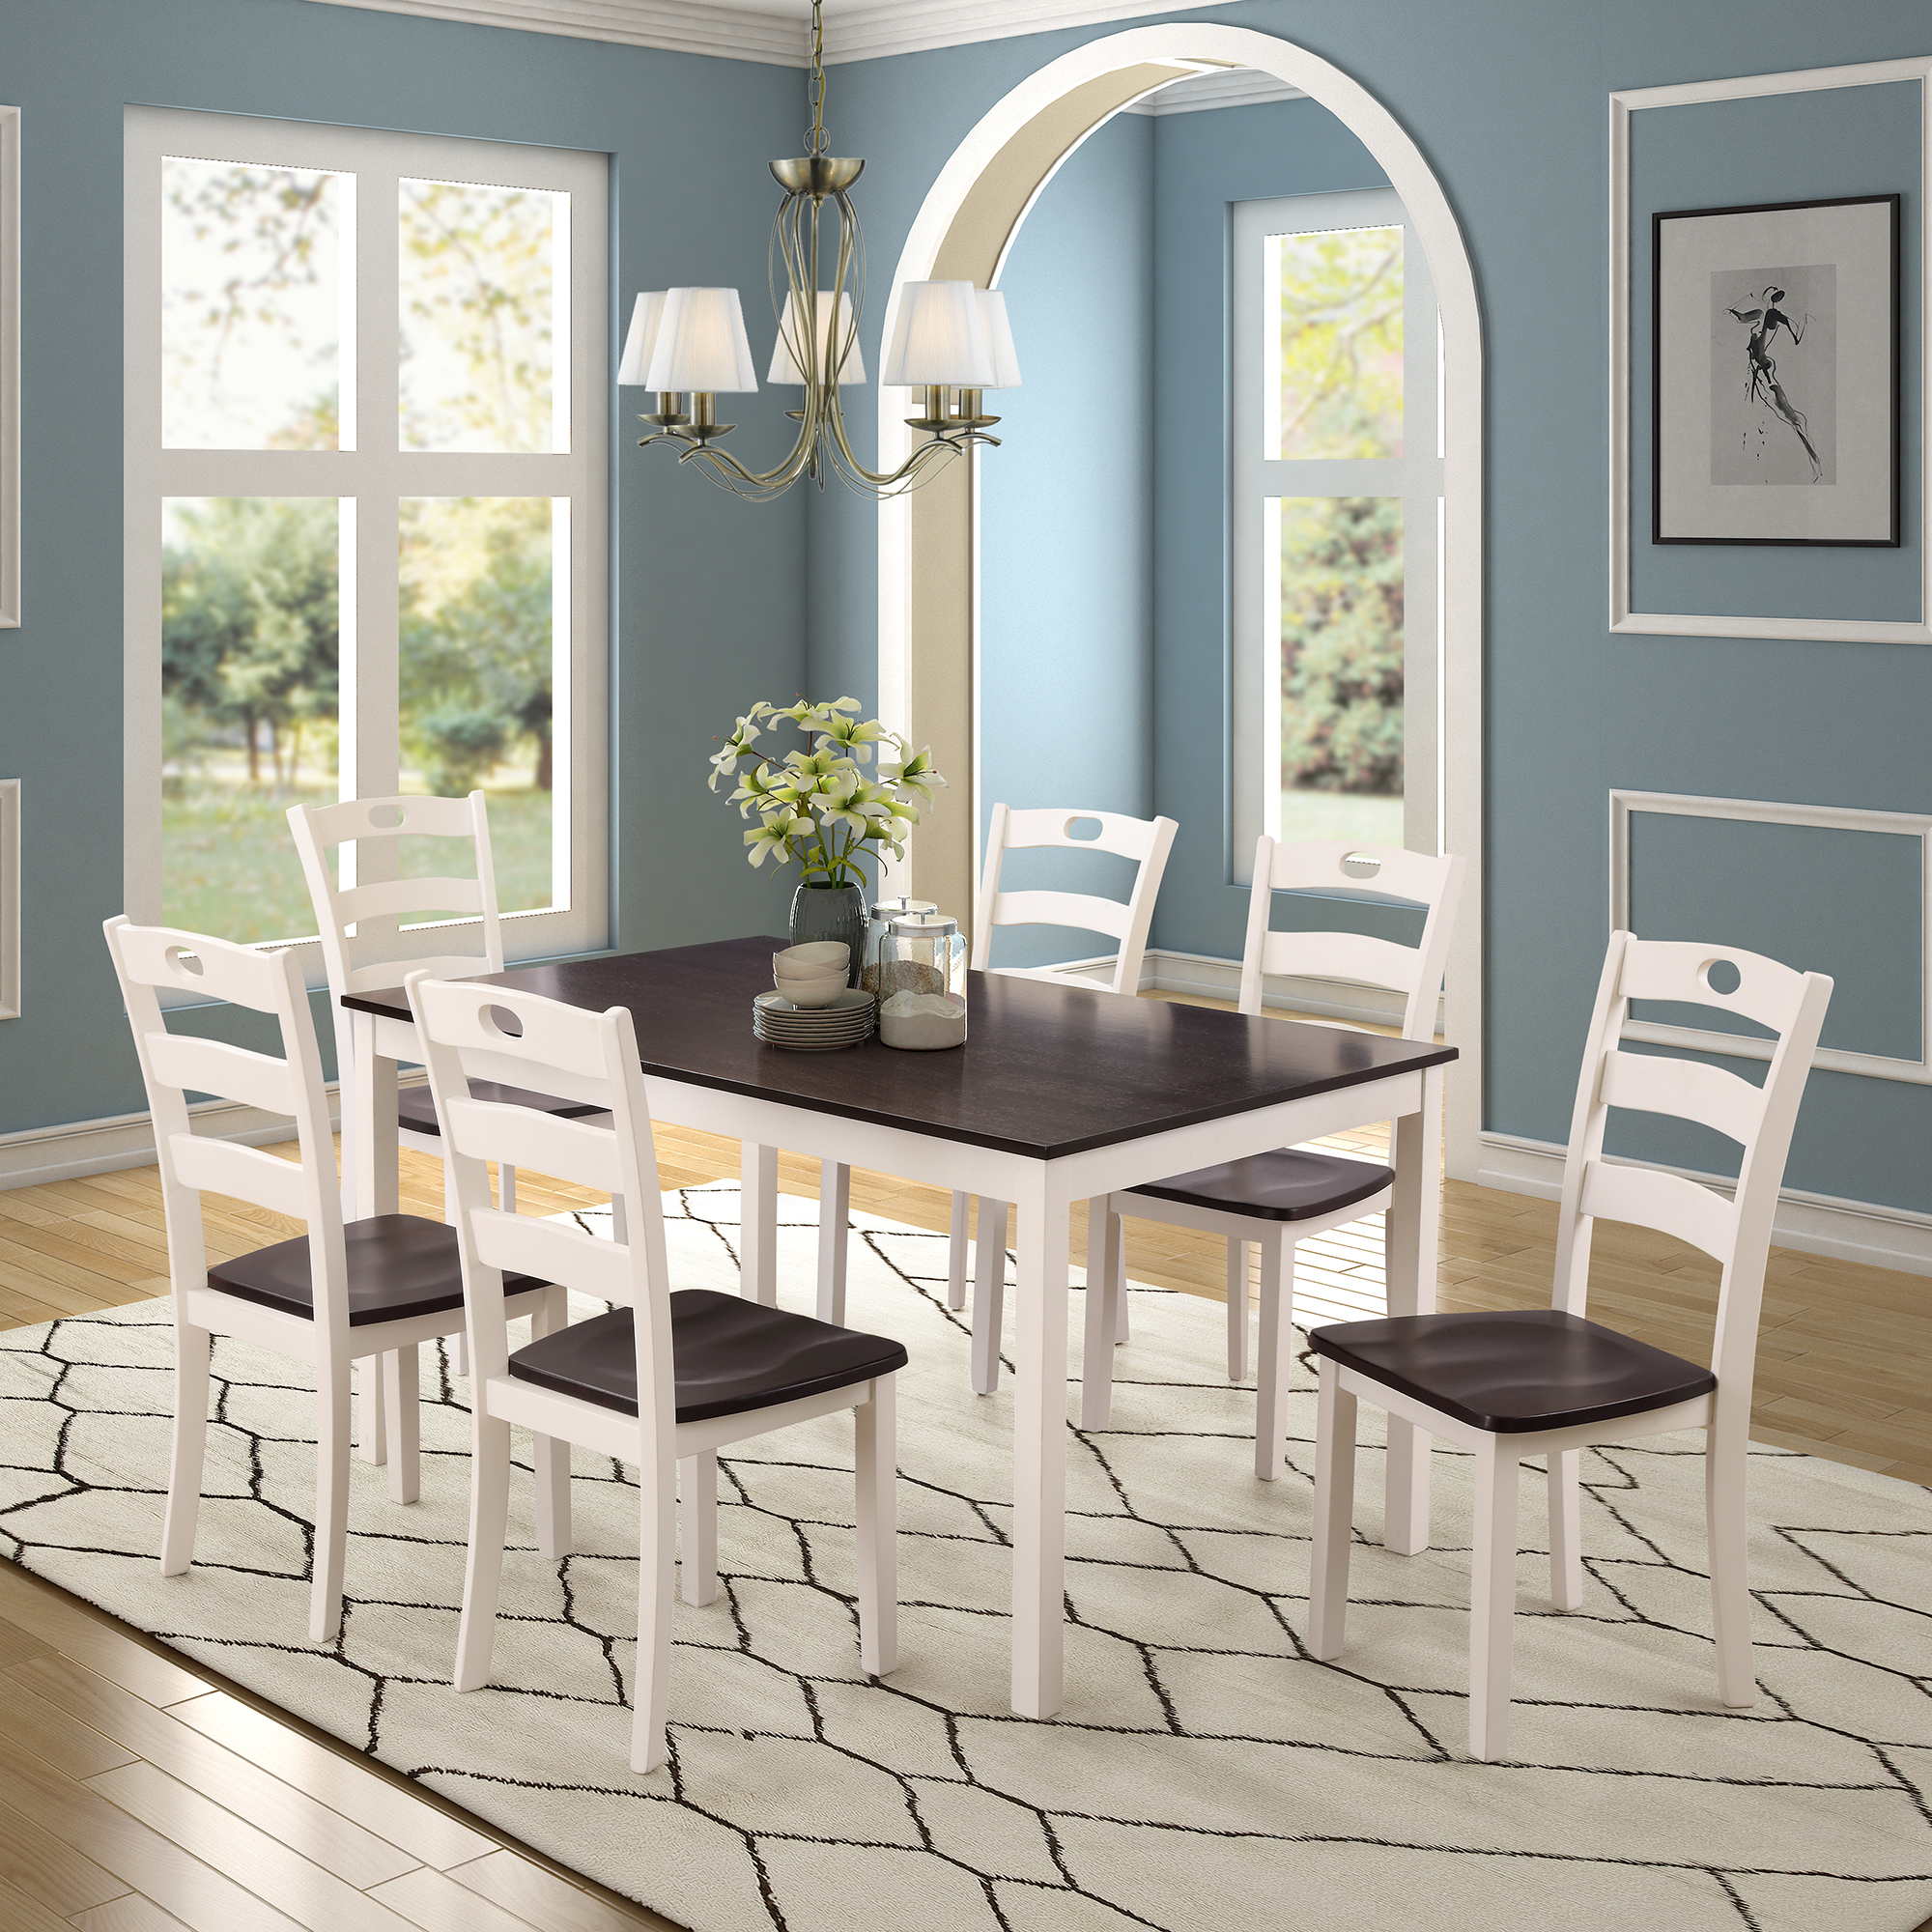 clearance white dining table set for 6 modern 7 piece on dining room sets on clearance id=40042